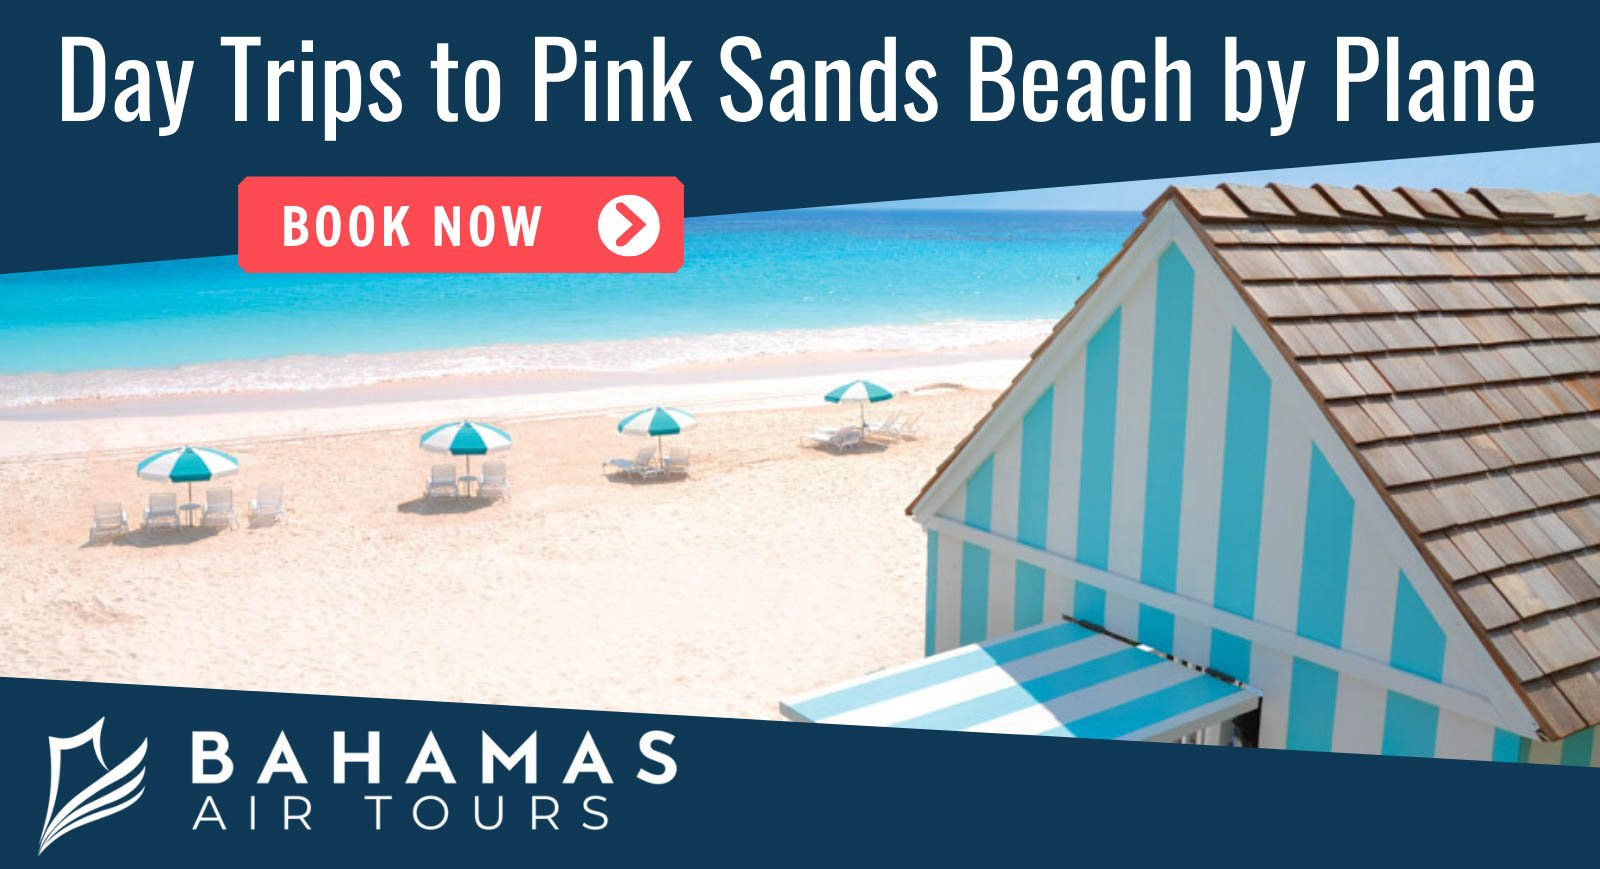 Pinks Sands BEach Harbour ISland Tours with Bahamas Air Tours by Plane.